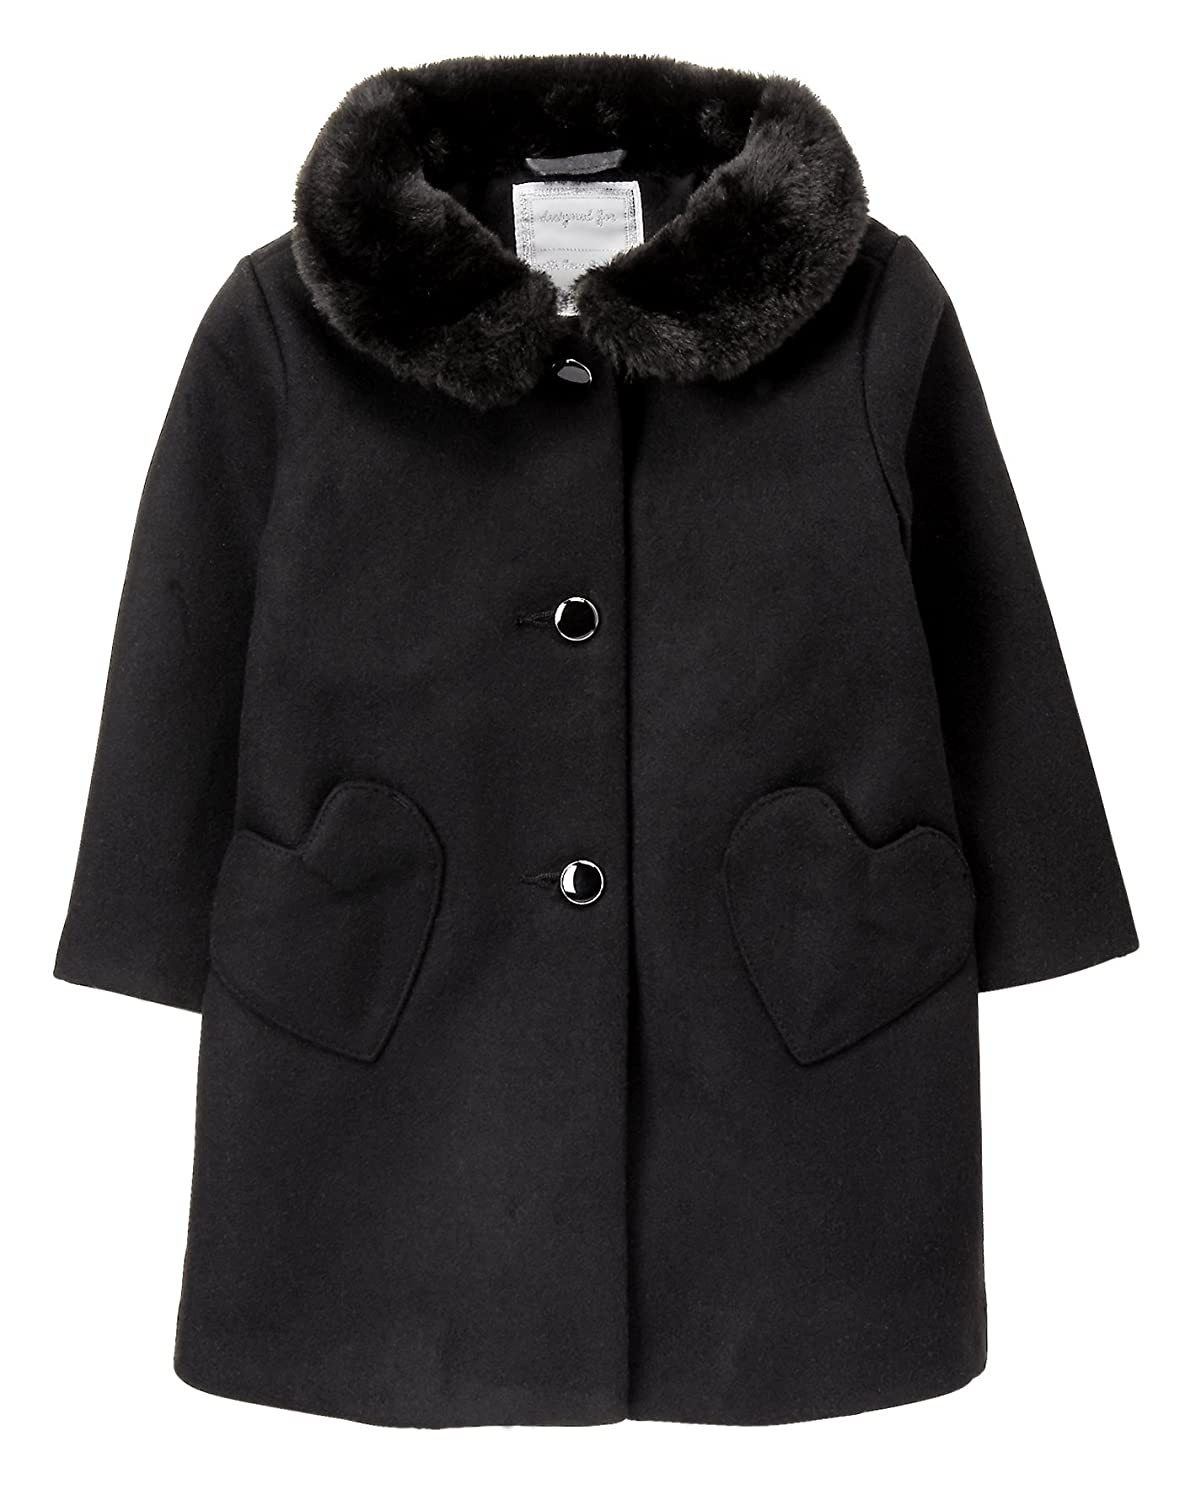 Gymboree Girls' Toddler Black Dressy Coat